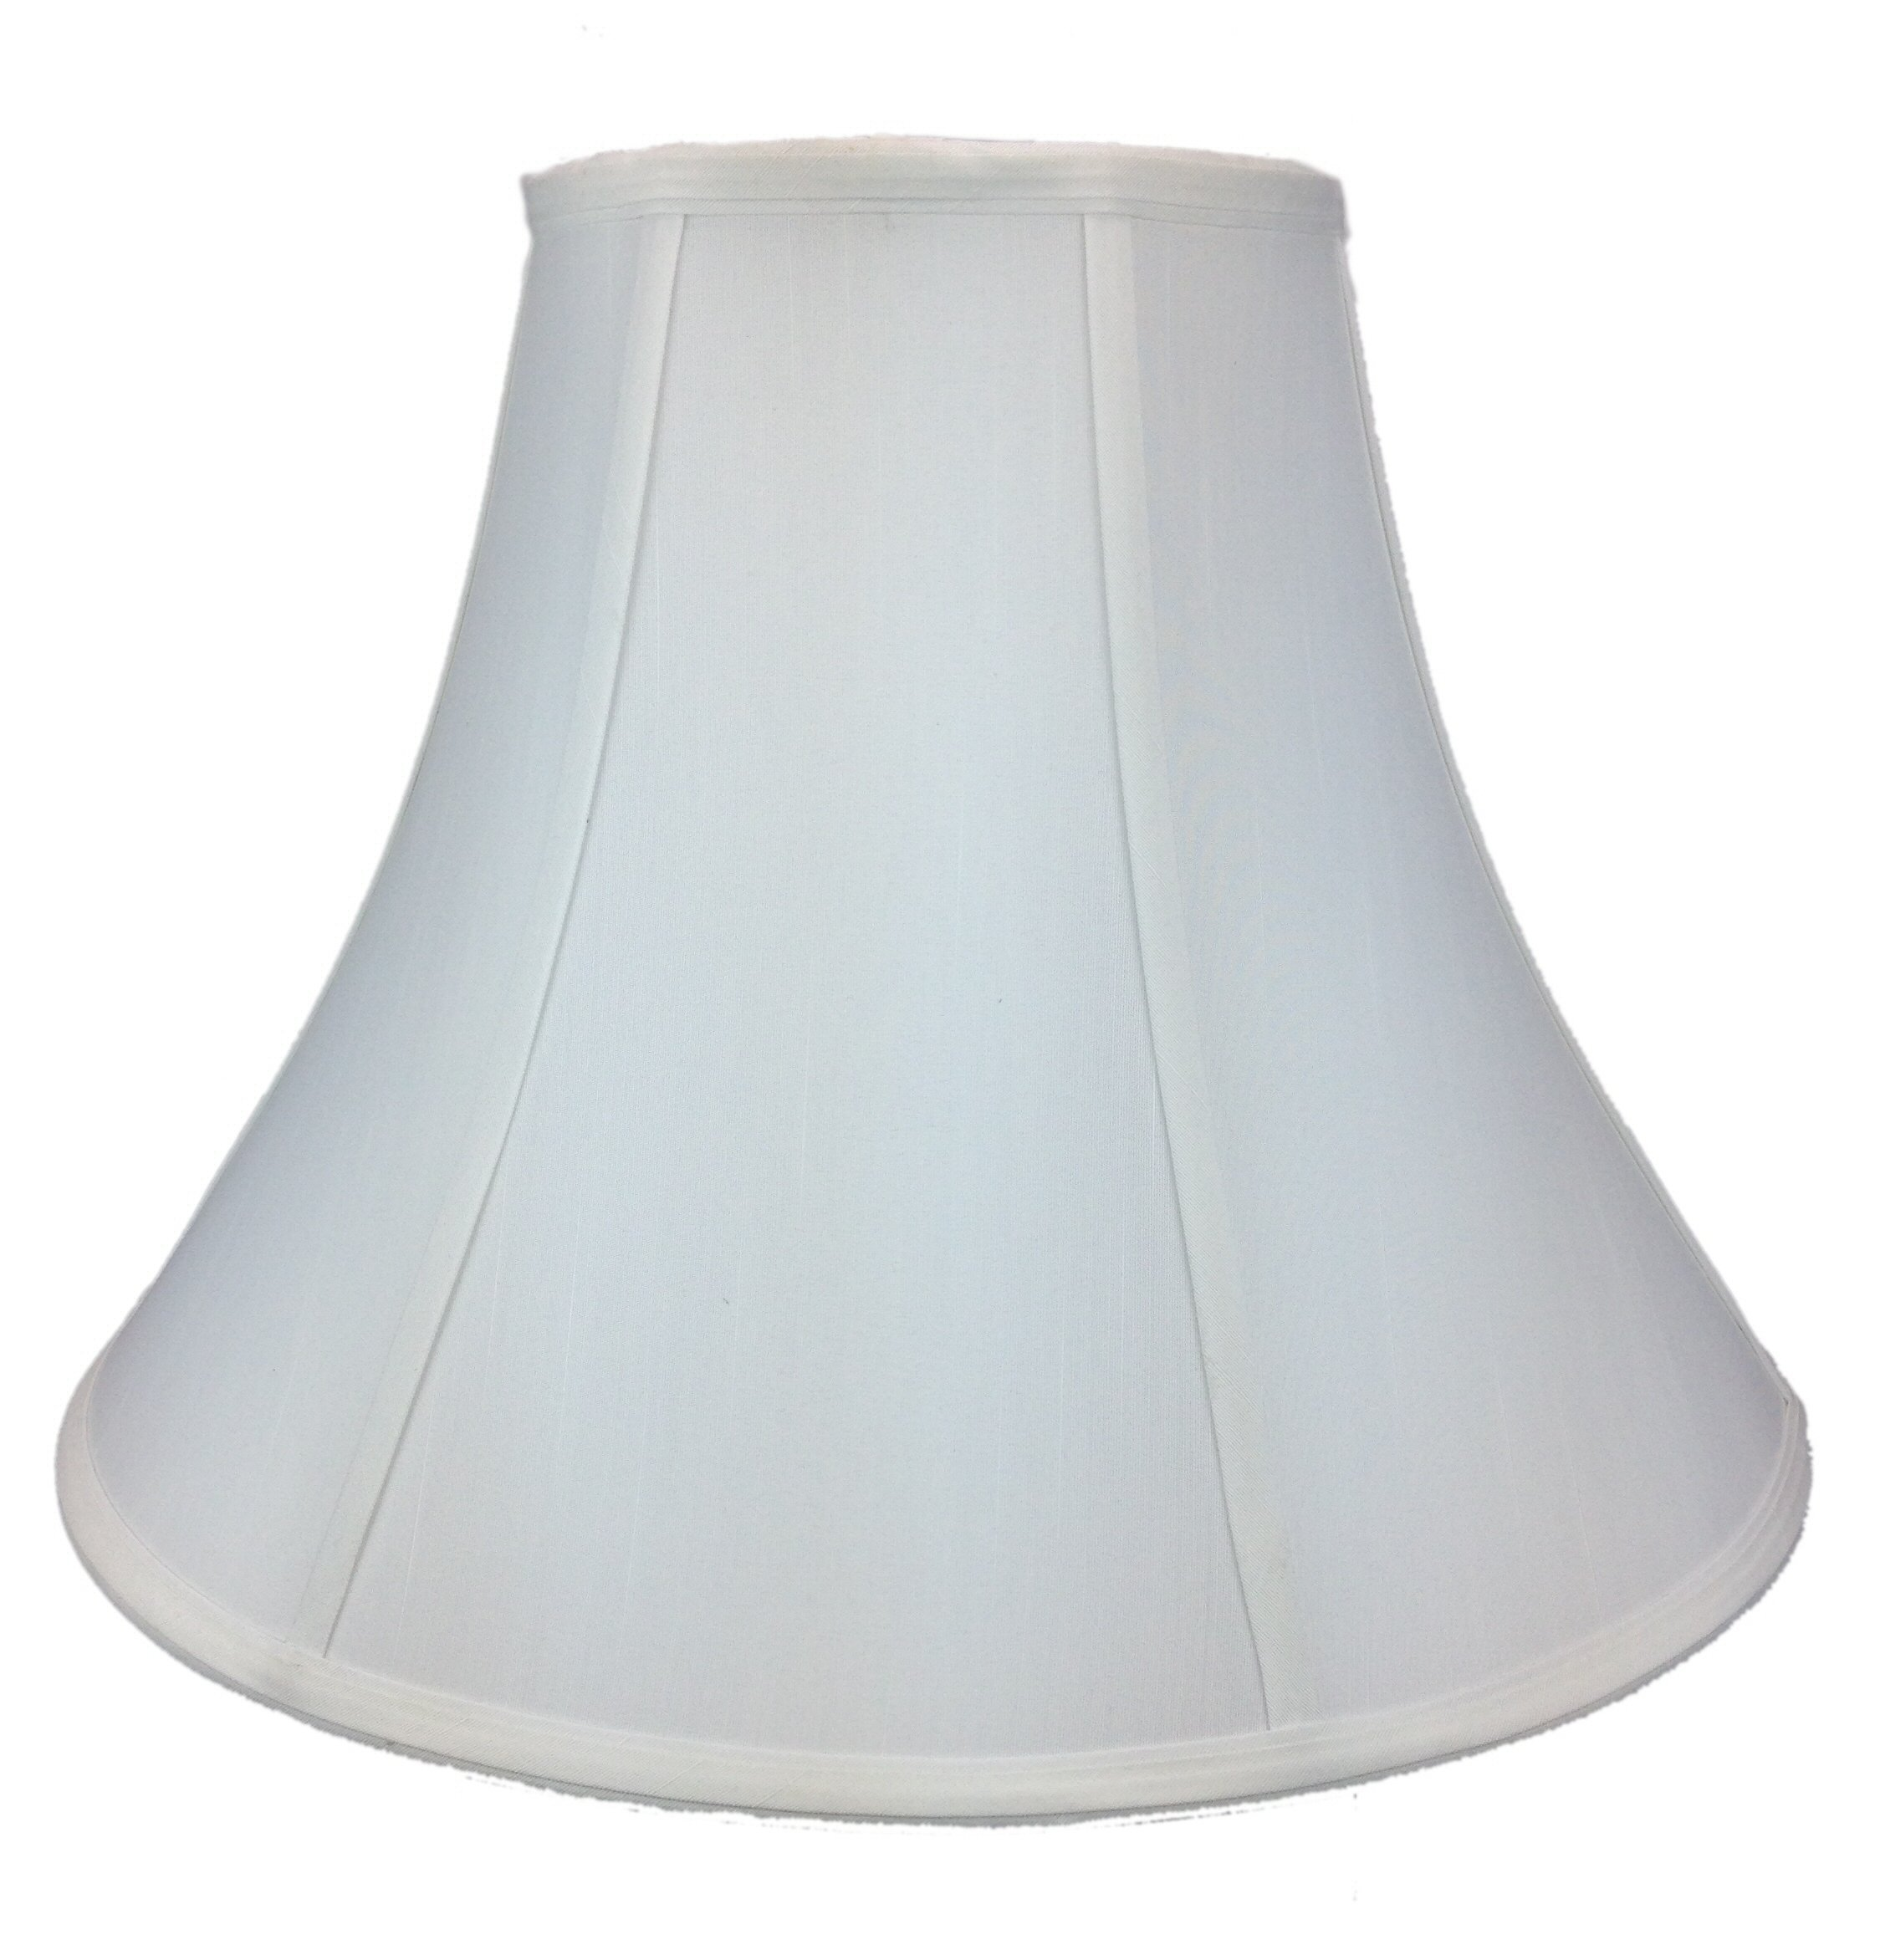 7x17x12 White Shantung Bell Shade with Brass Spider fitter By Home Concept - Perfect for table lamps and some desk lamps -Medium, White